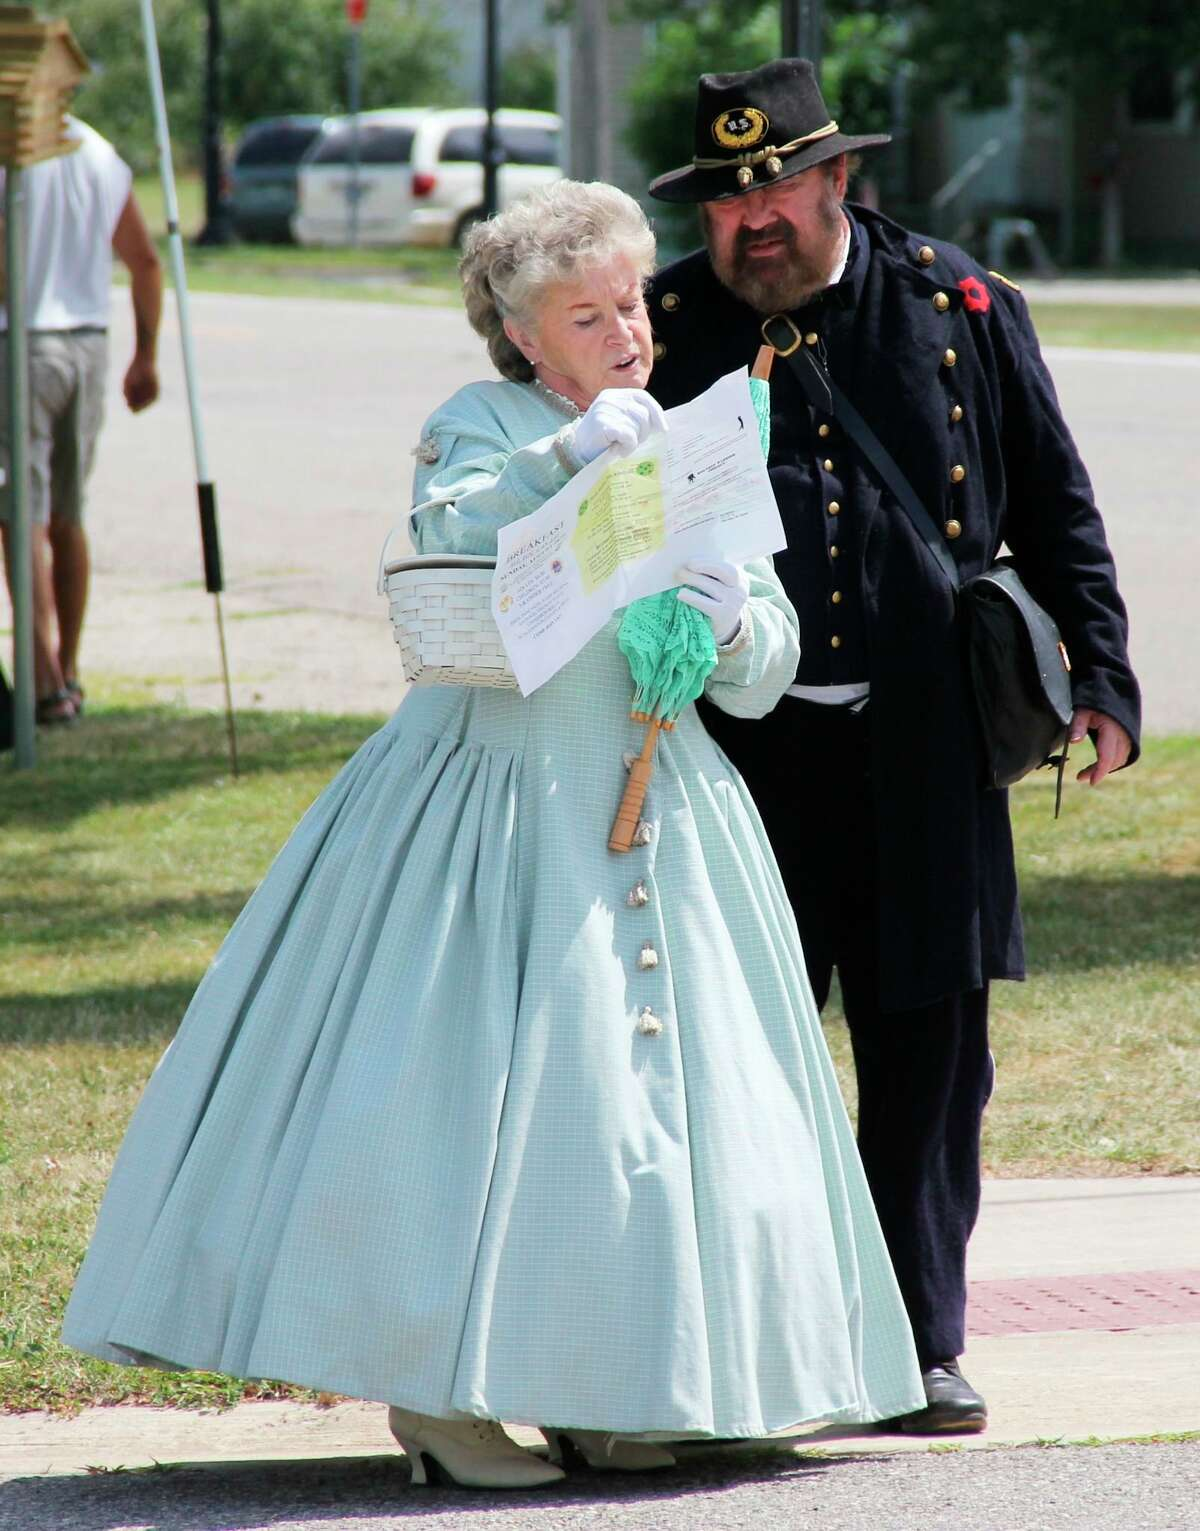 A couple in Civil War-era attire were spotted at ABC Day in Port Hope in 2019.The town's annual celebration of antiques, bean soup, crafts and collectibles returns Saturday, Aug. 21, after a two-year hiatus. (Tribune File Photo)